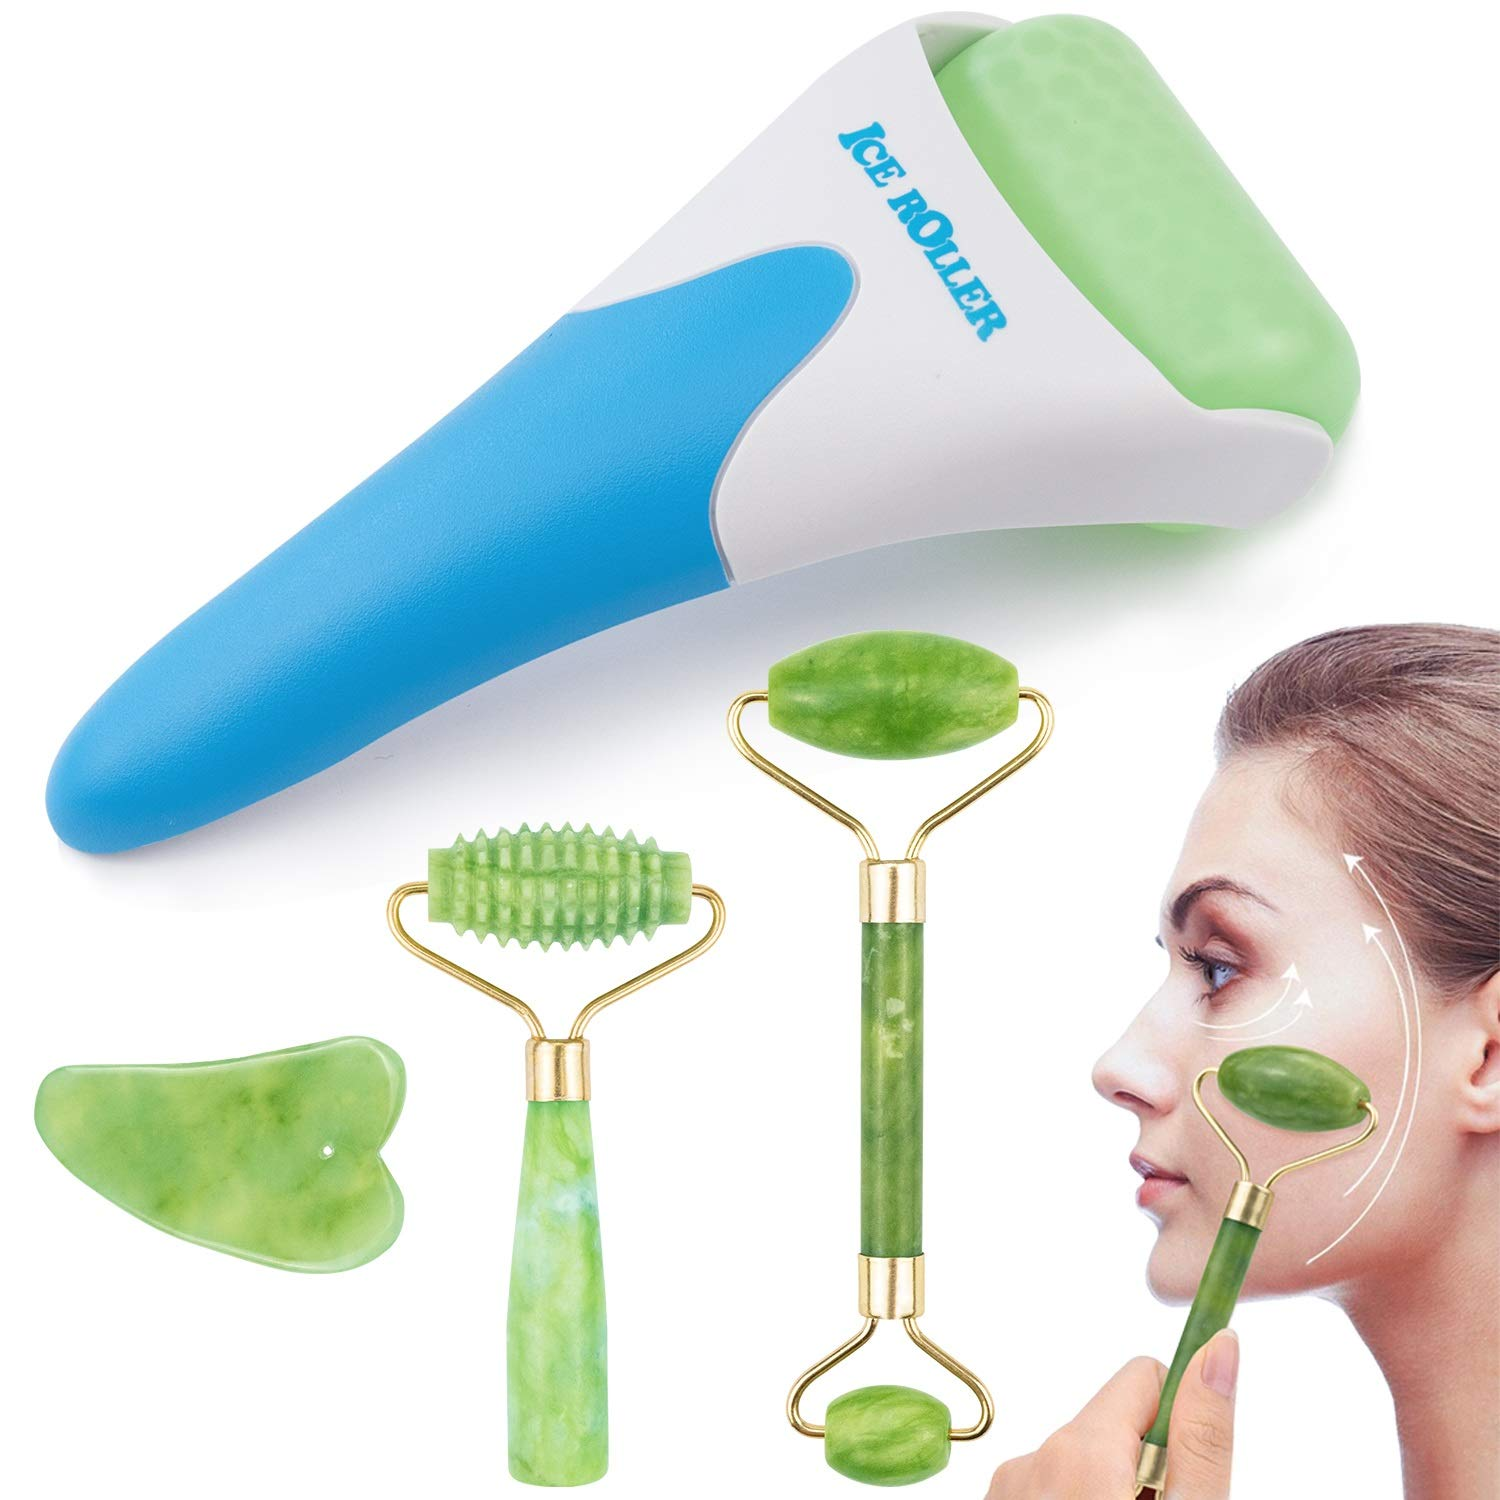 EAONE 4 in 1 Ice Roller Jade Roller Eyes Facial Massage Kits Cold Freezer Therapy Instant Pain Relief Wrinkle Preventing Coolers Skin Roller for Face & Eye Neck Massage Mother's Day Gift: Beauty